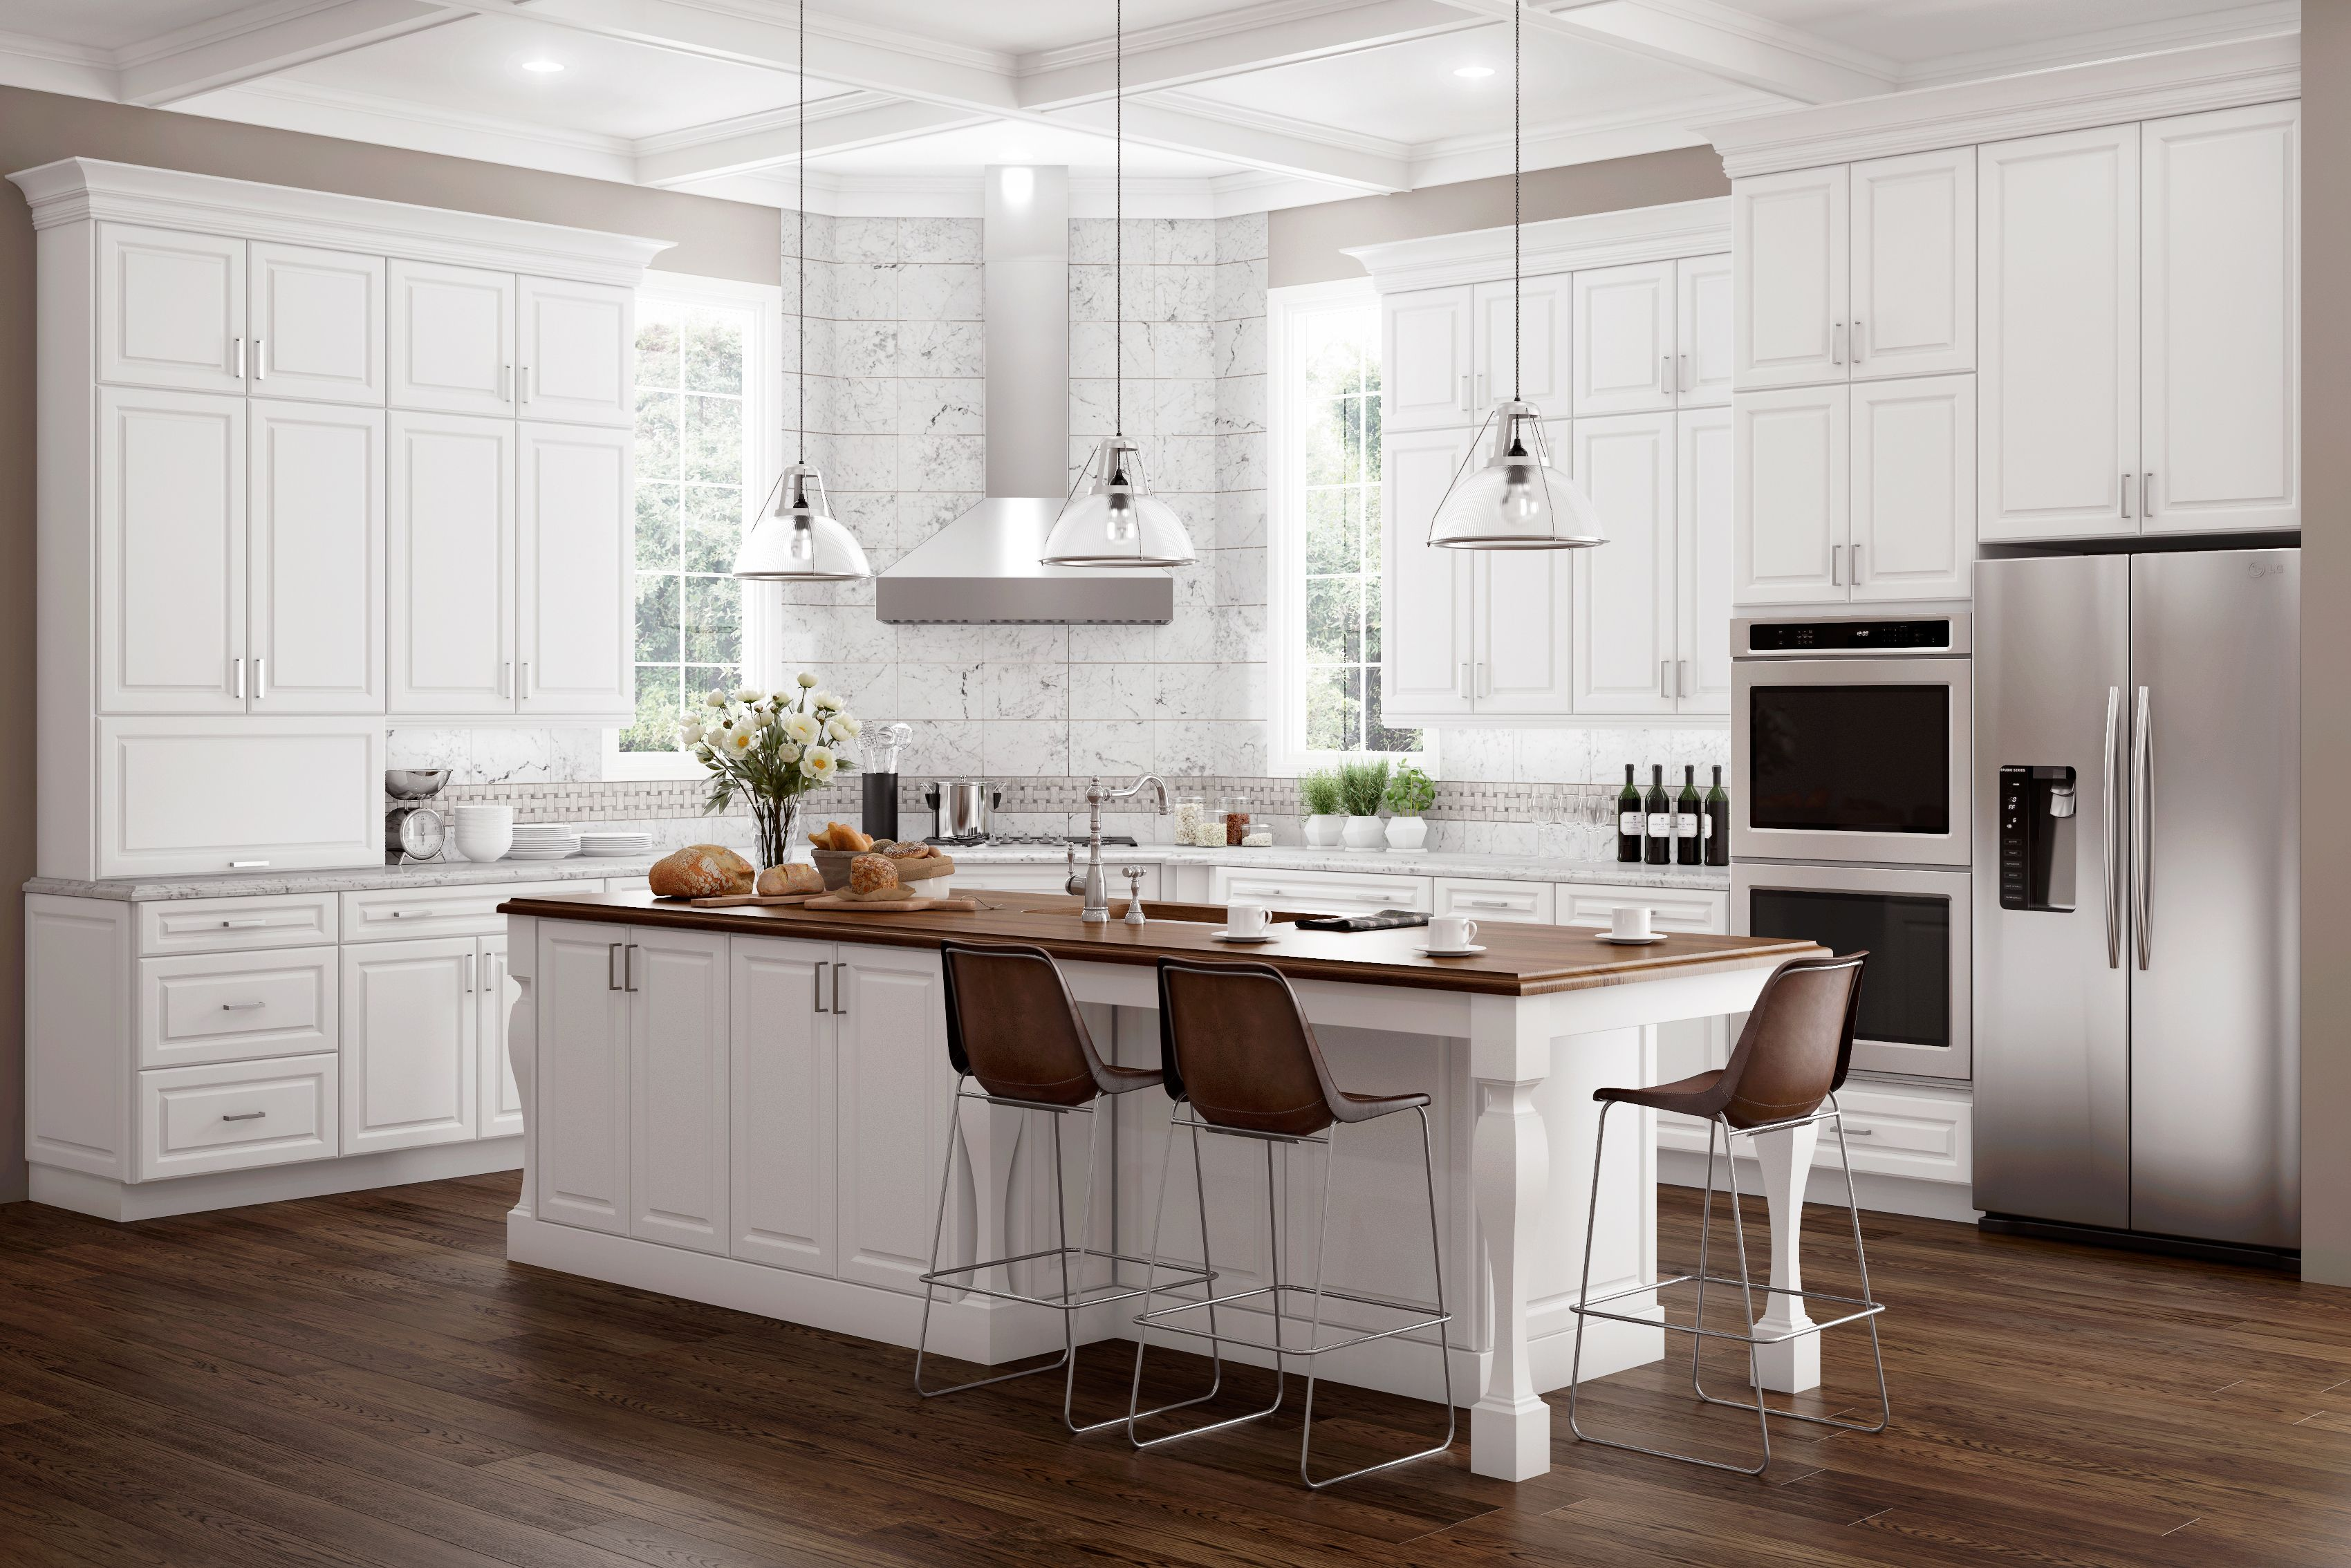 Hamilton Thermofoil White Simple kitchen